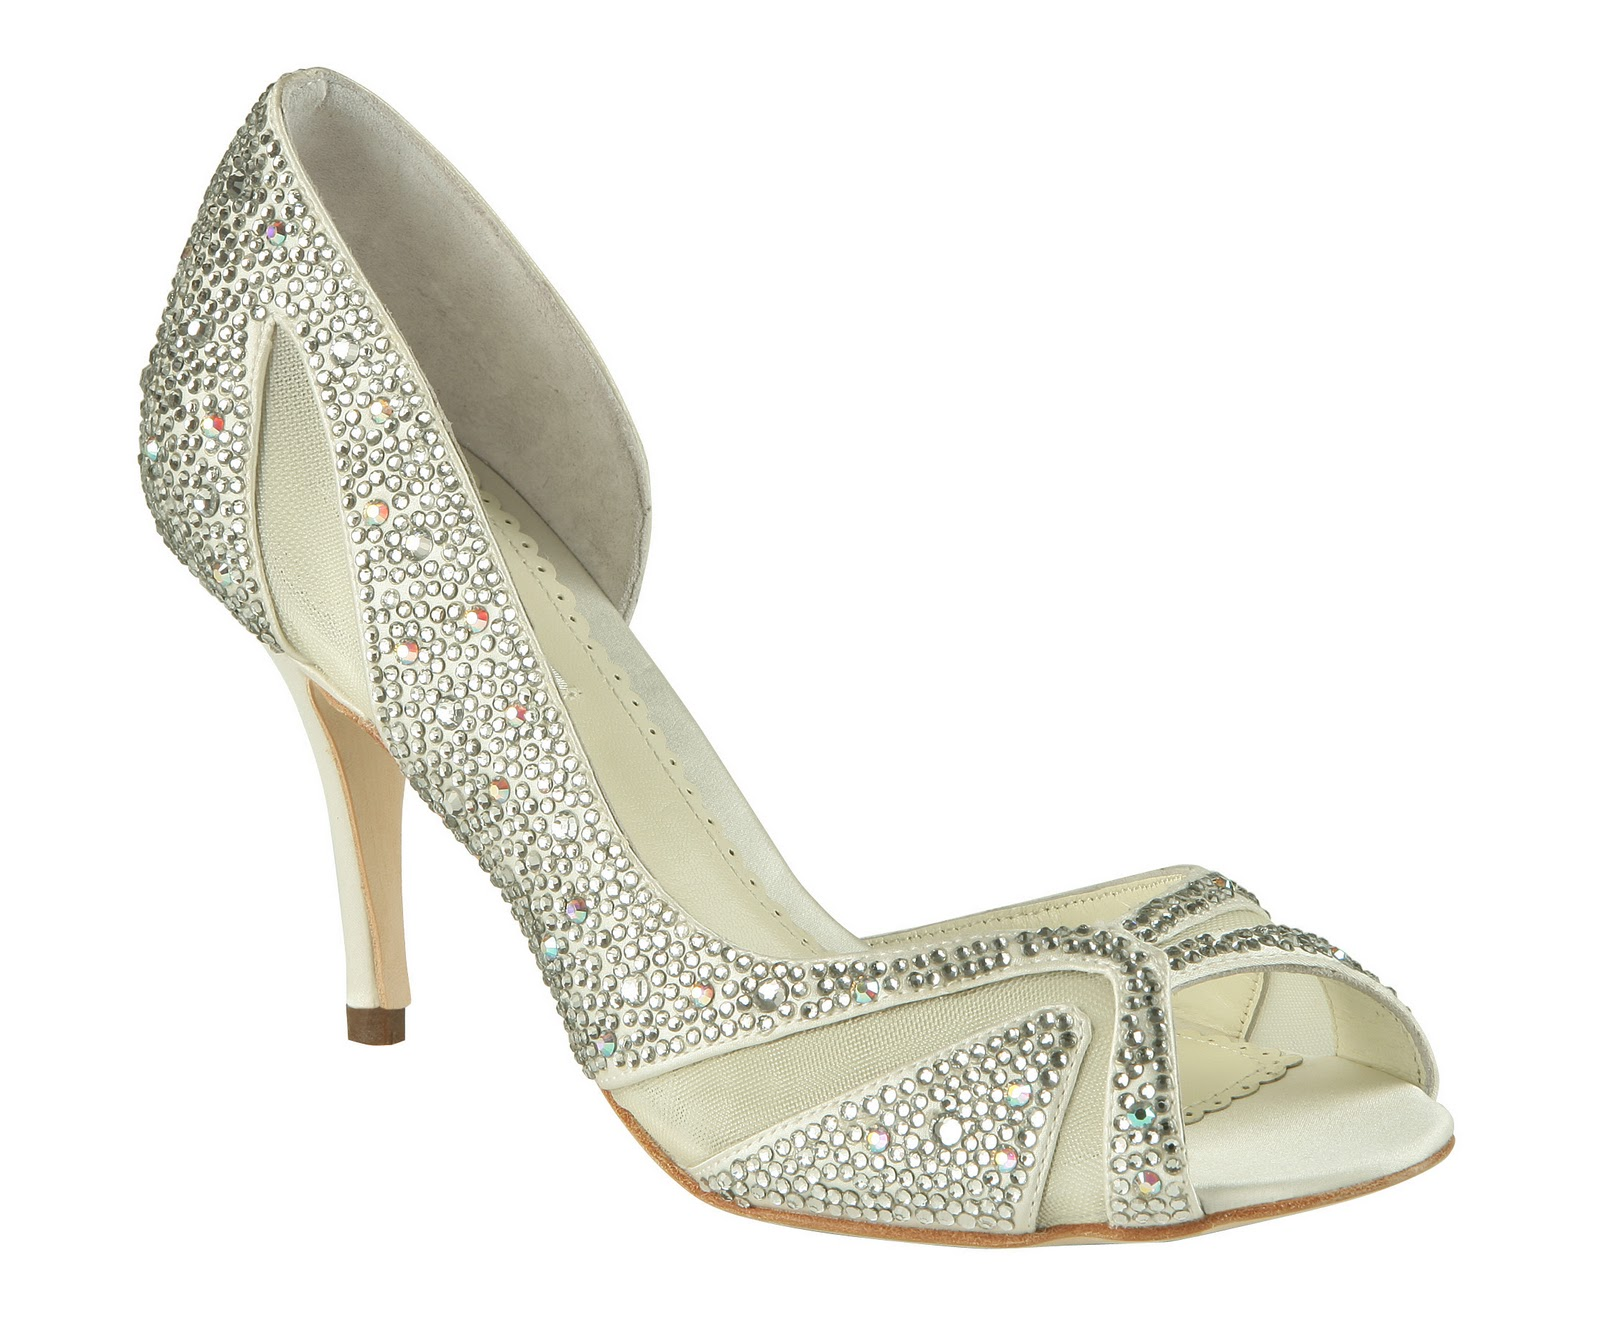 Wedding Dresses: Panache Bridal Shoes